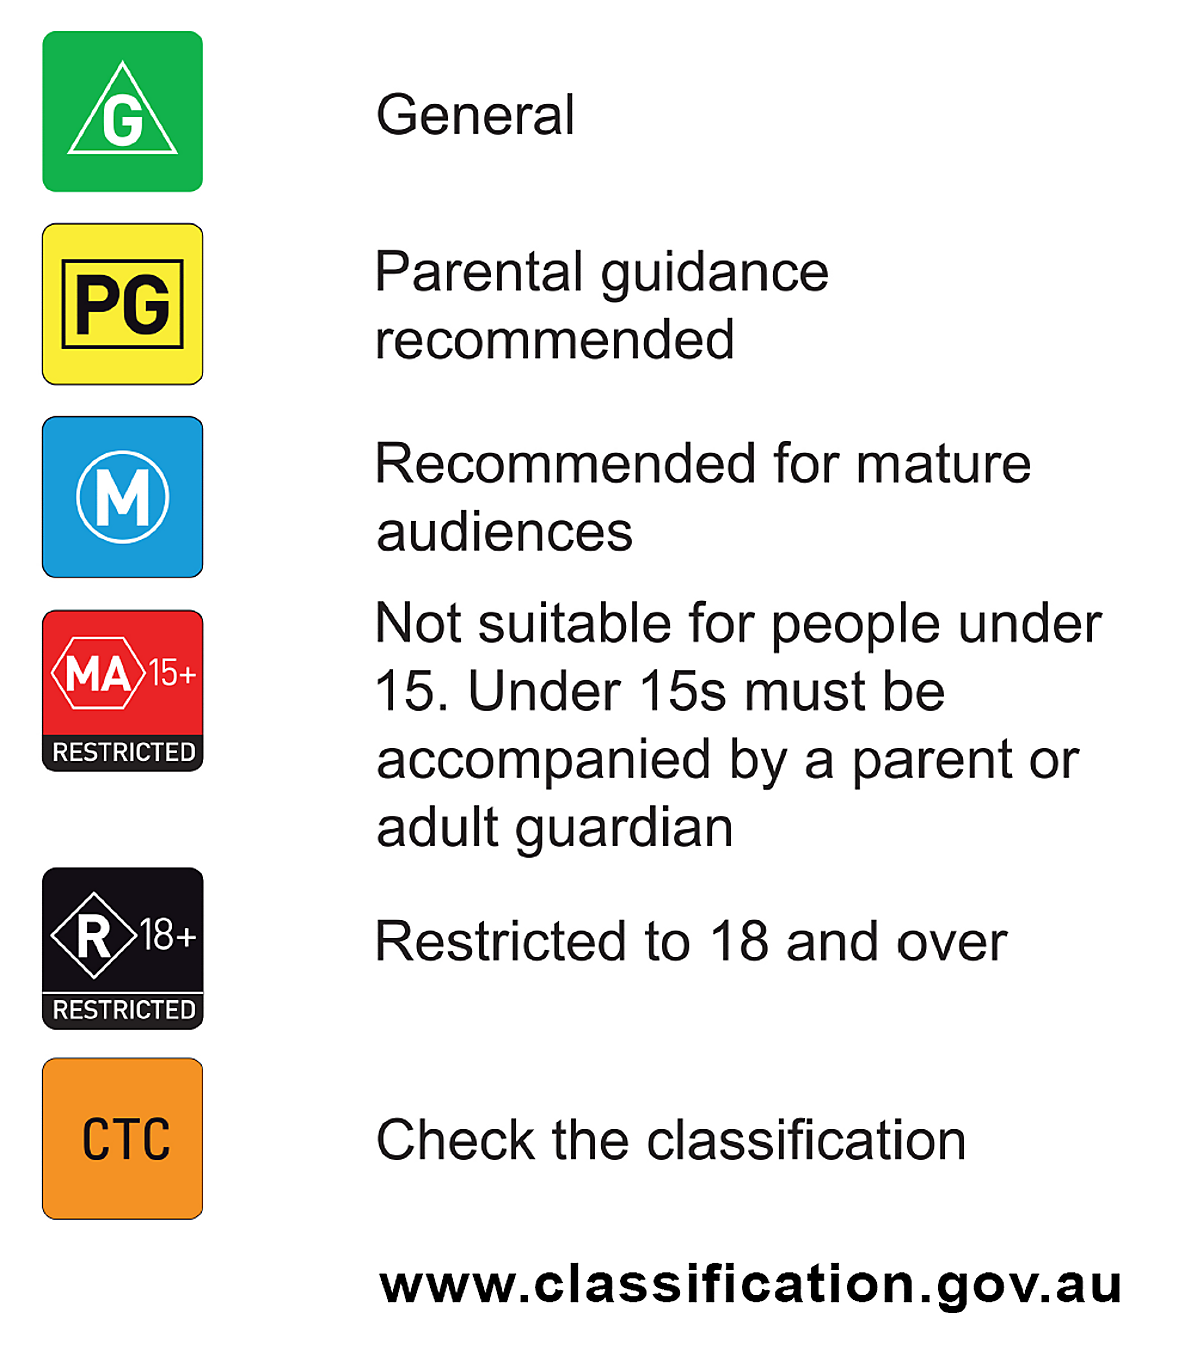 Consumer Advice and Ratings